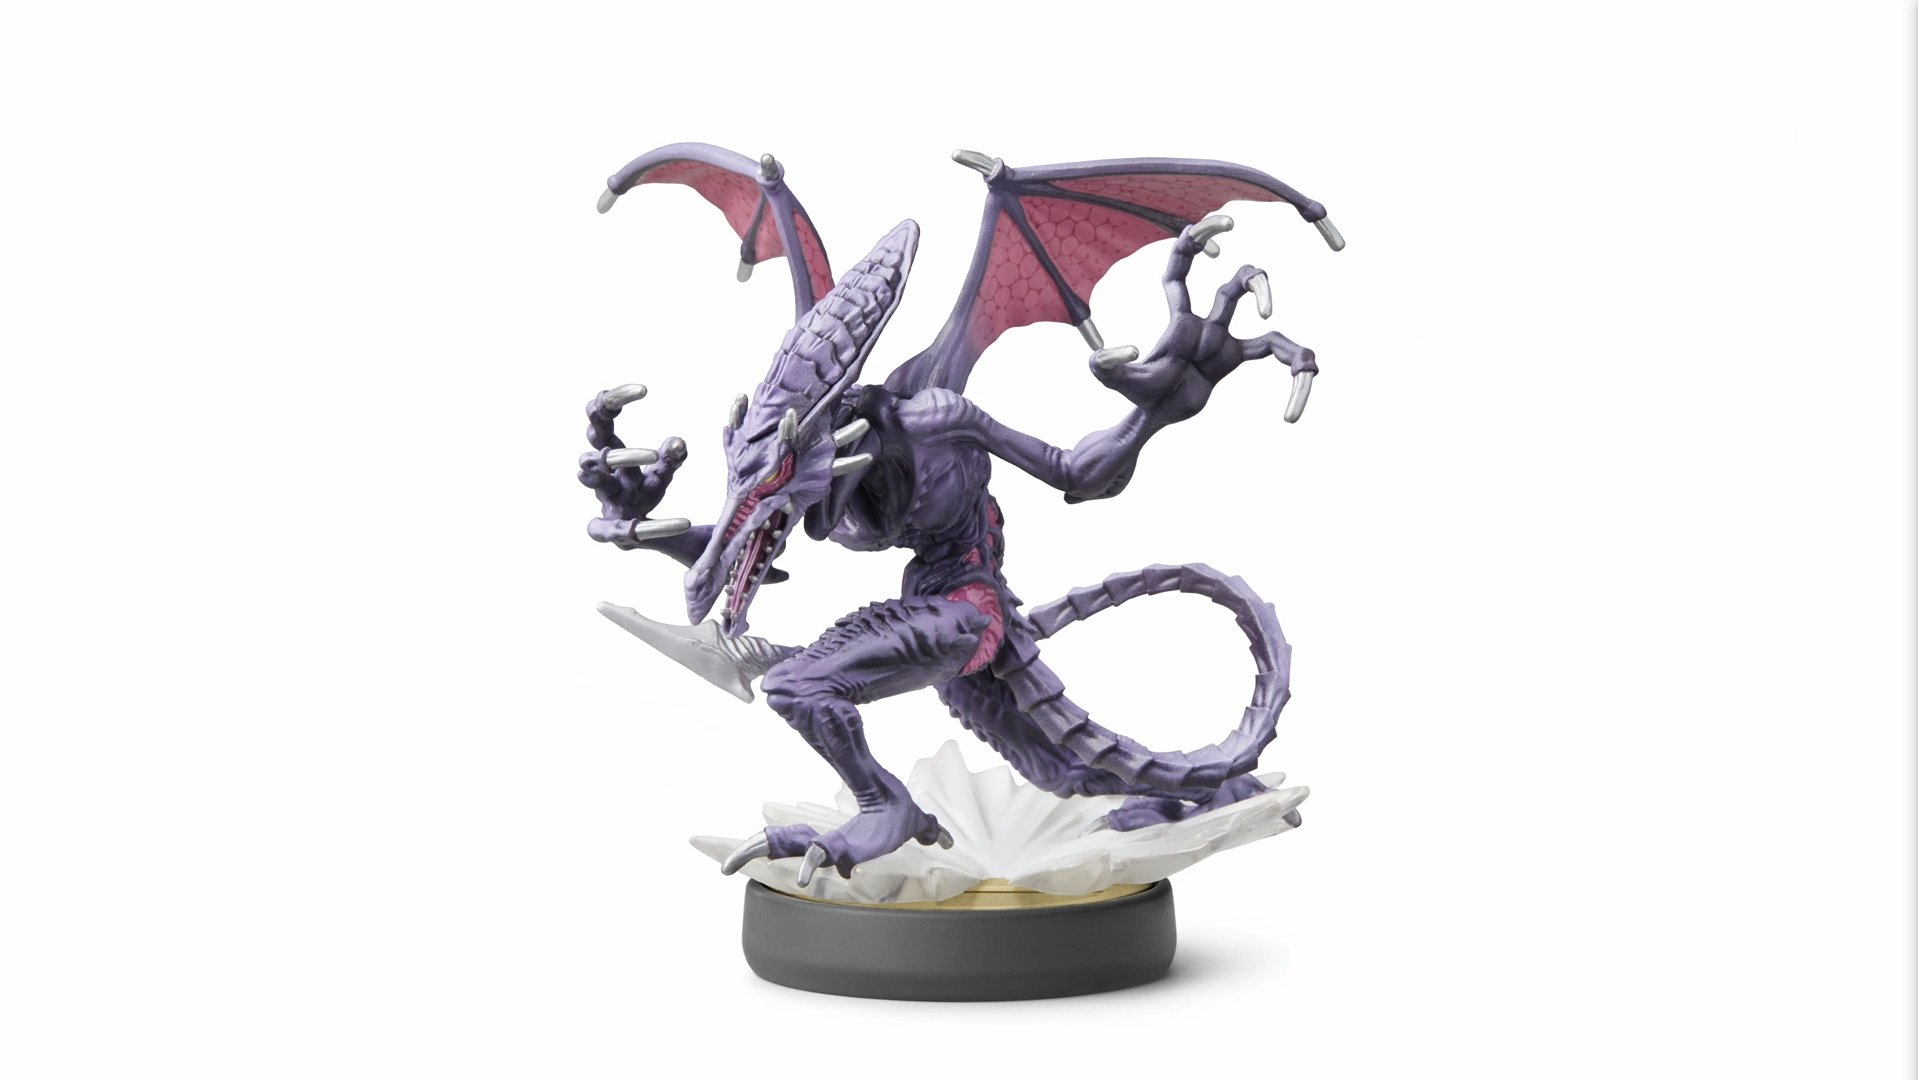 Will Amiibo work with Super Smash